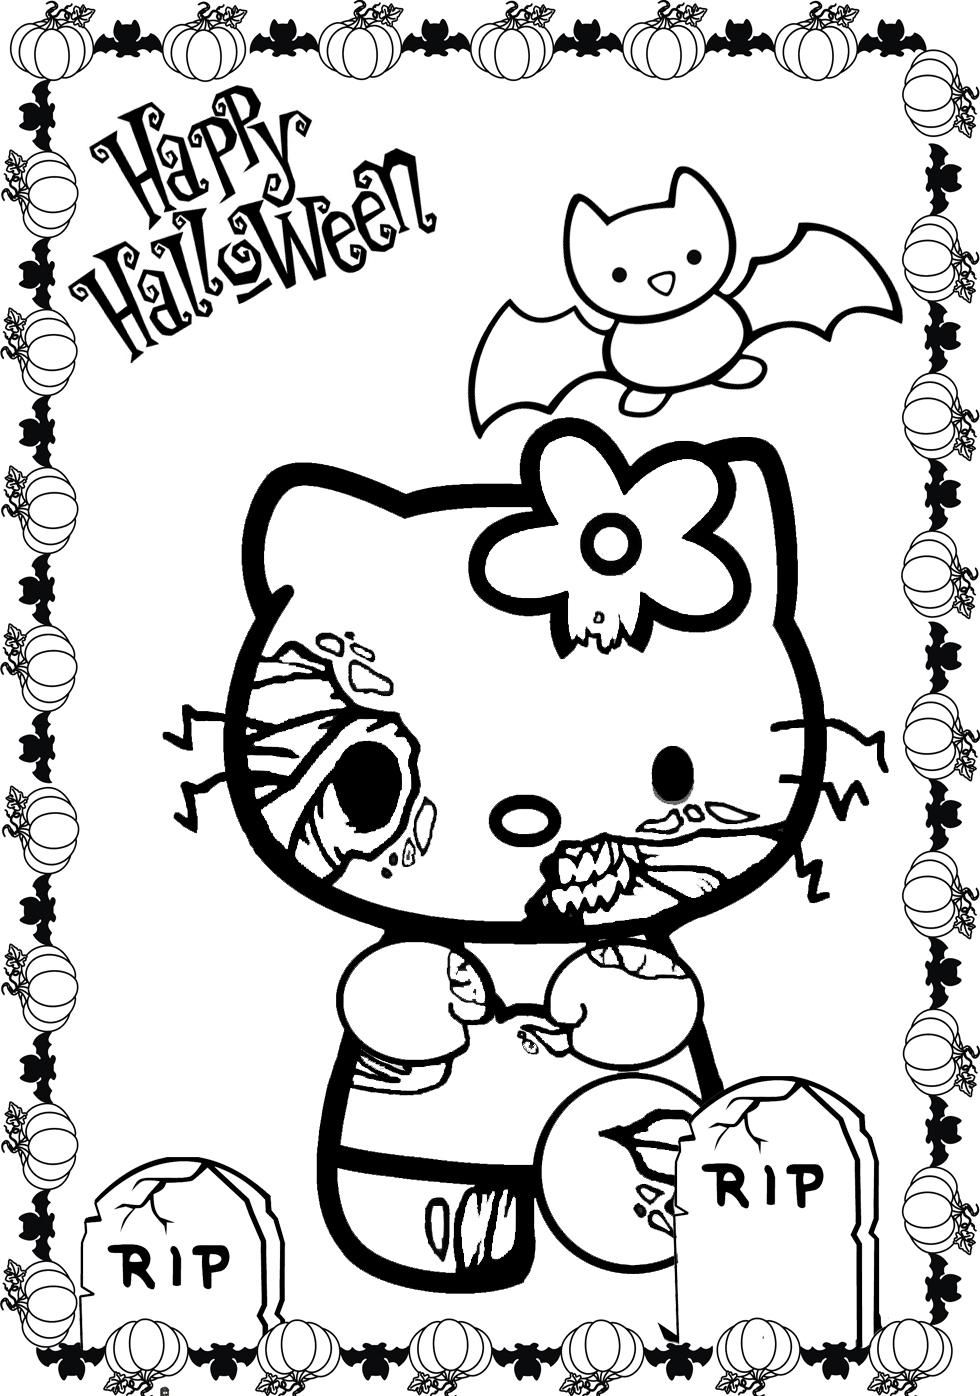 Hello Kitty Halloween Coloring Pages To Print : Hello kitty halloween coloring page az pages